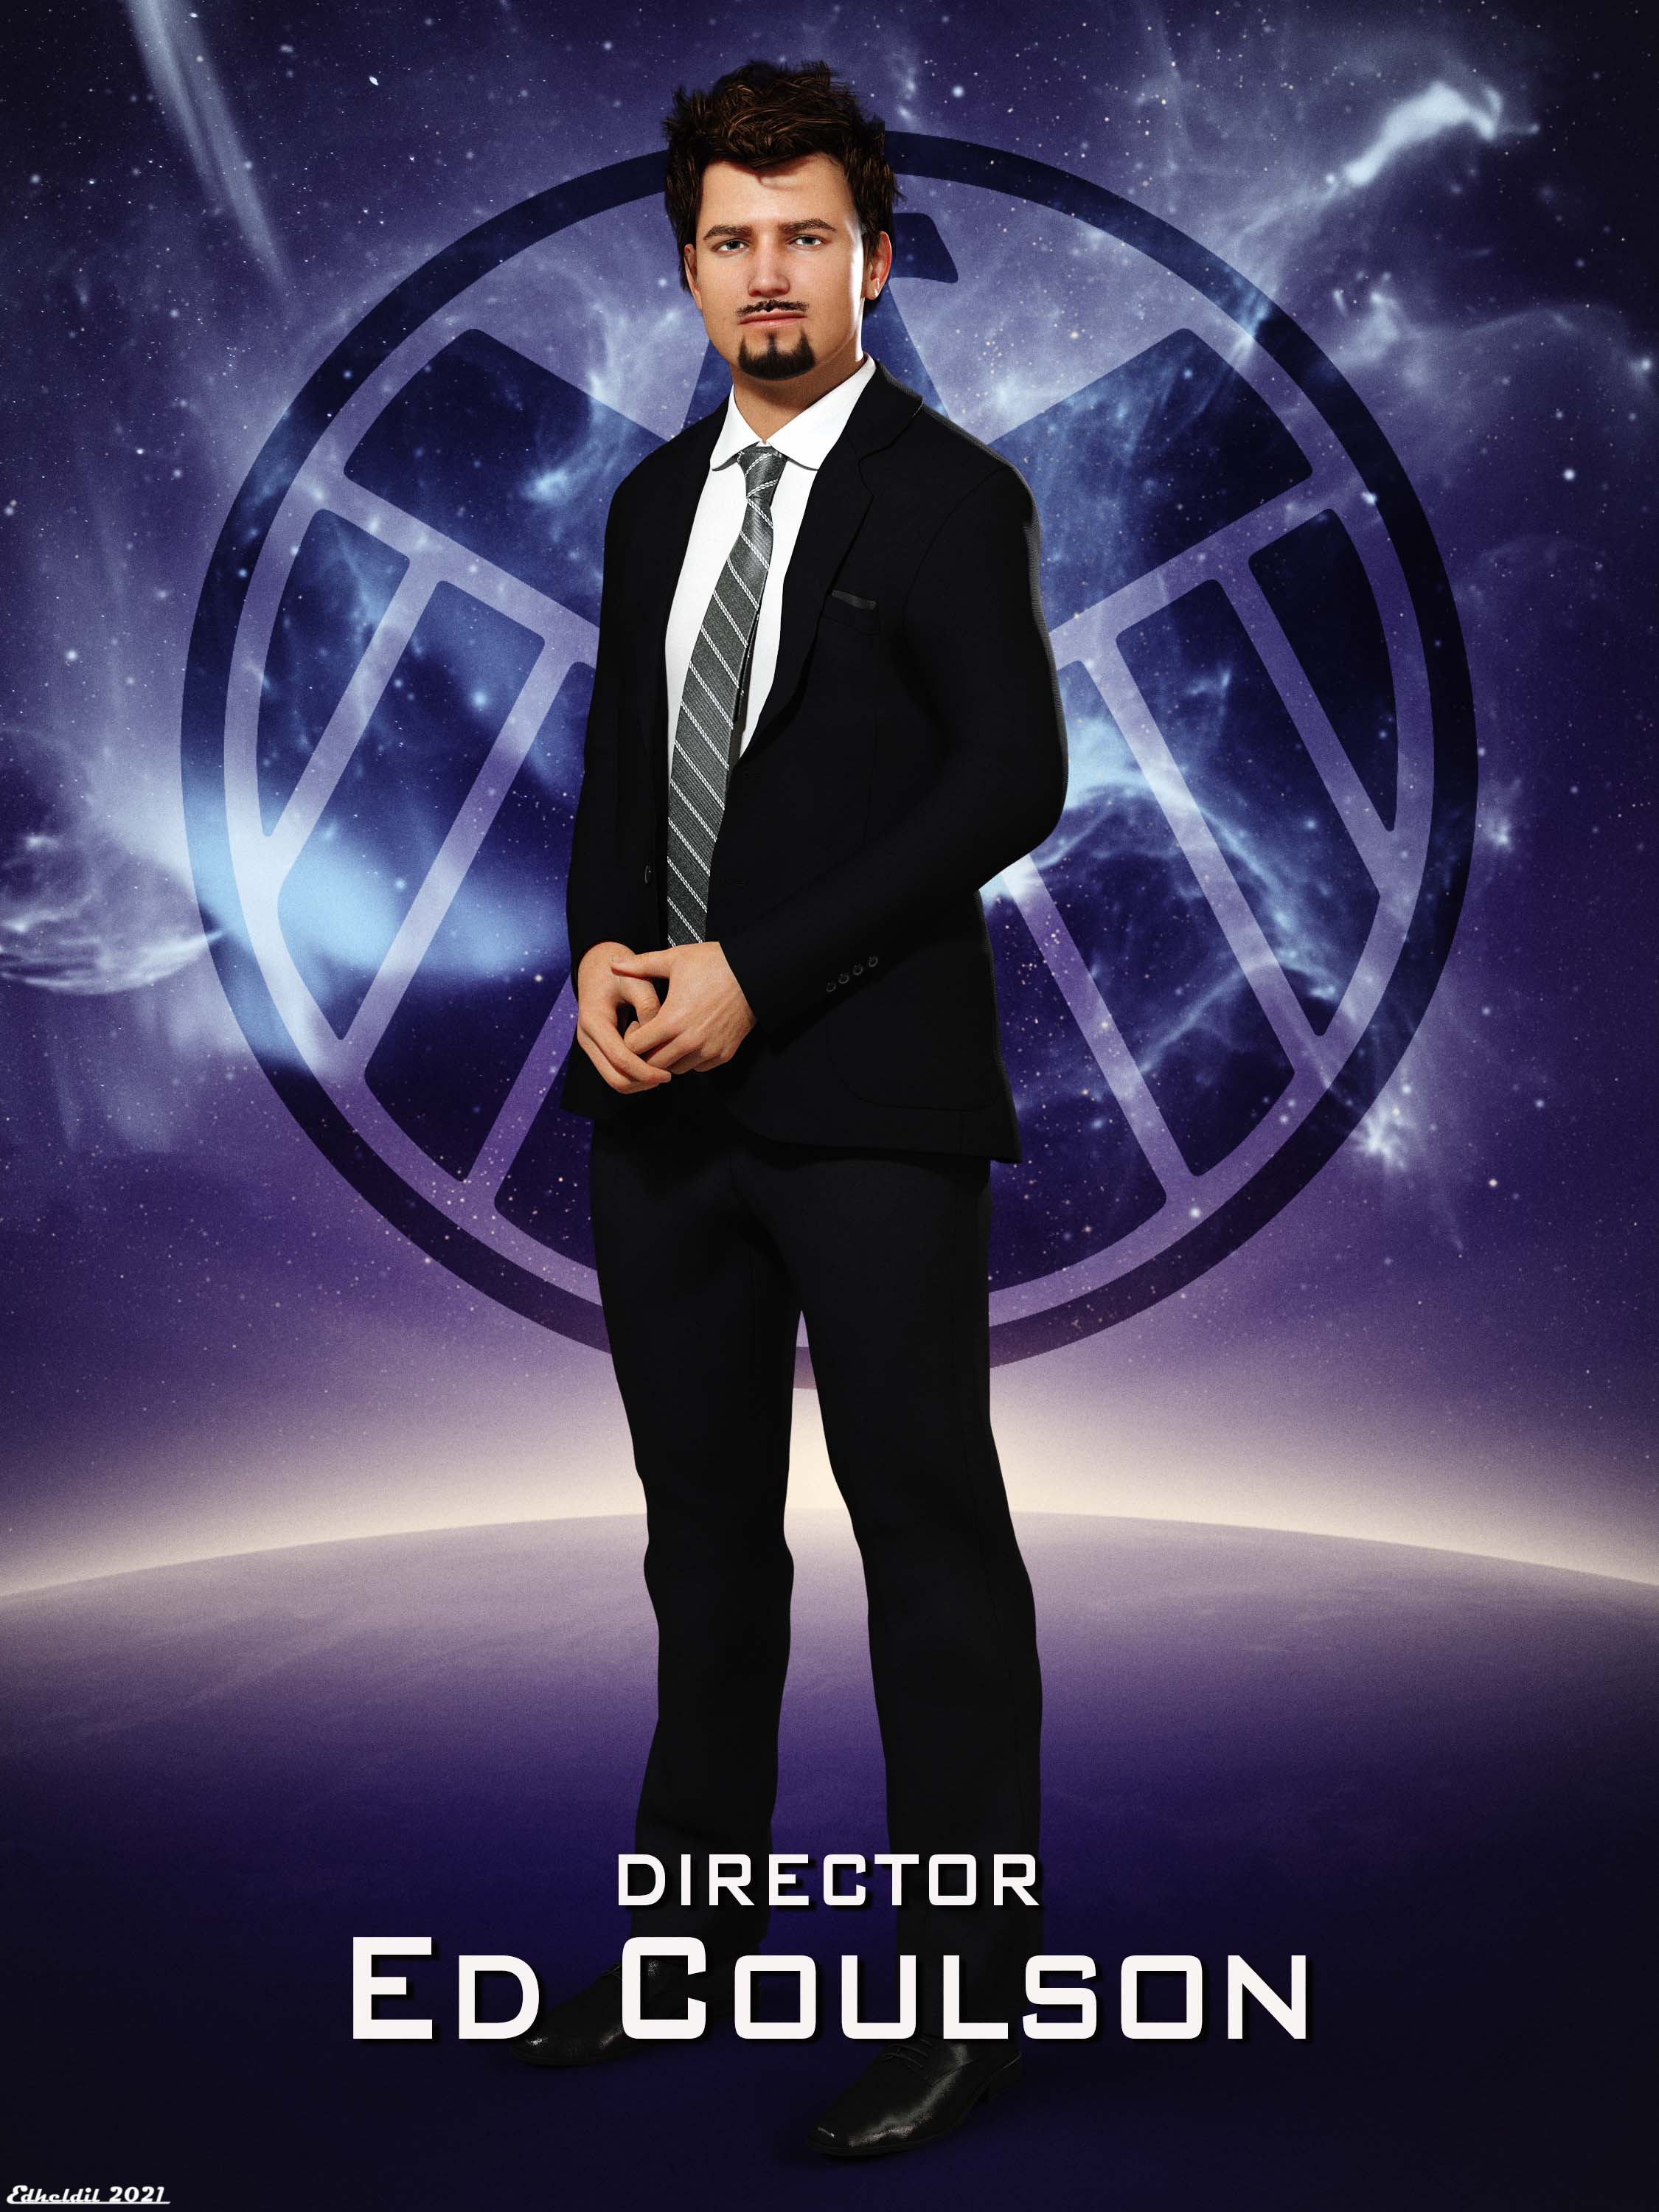 Multiverse (Earth 1409): Director Ed Coulson